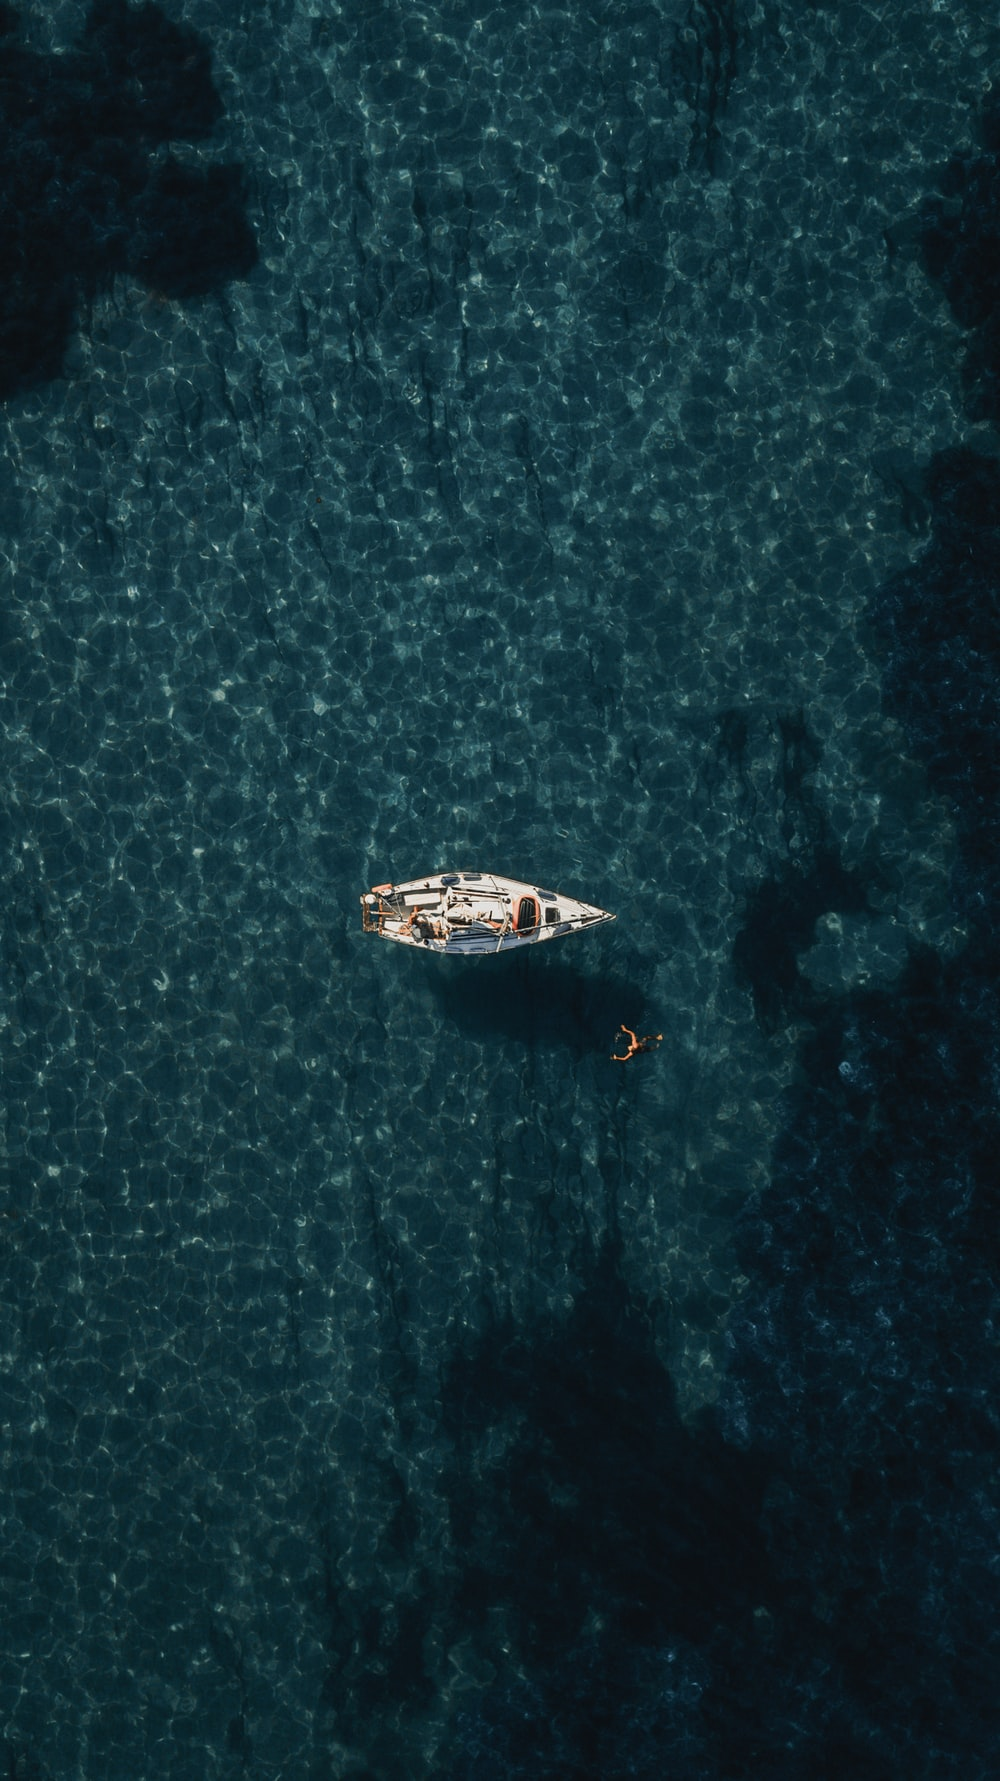 bird's-eye view of white boat on body of water